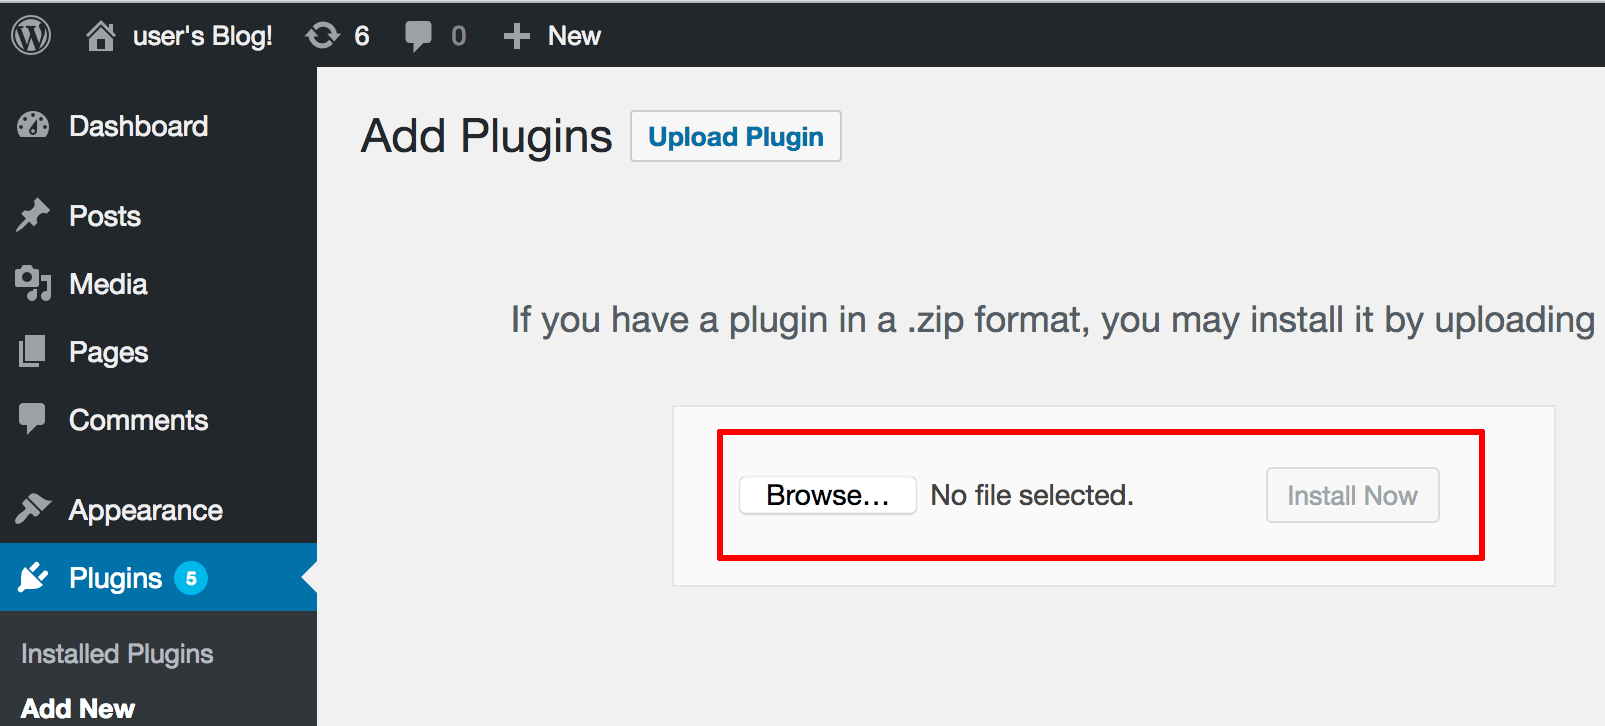 Plugin installation